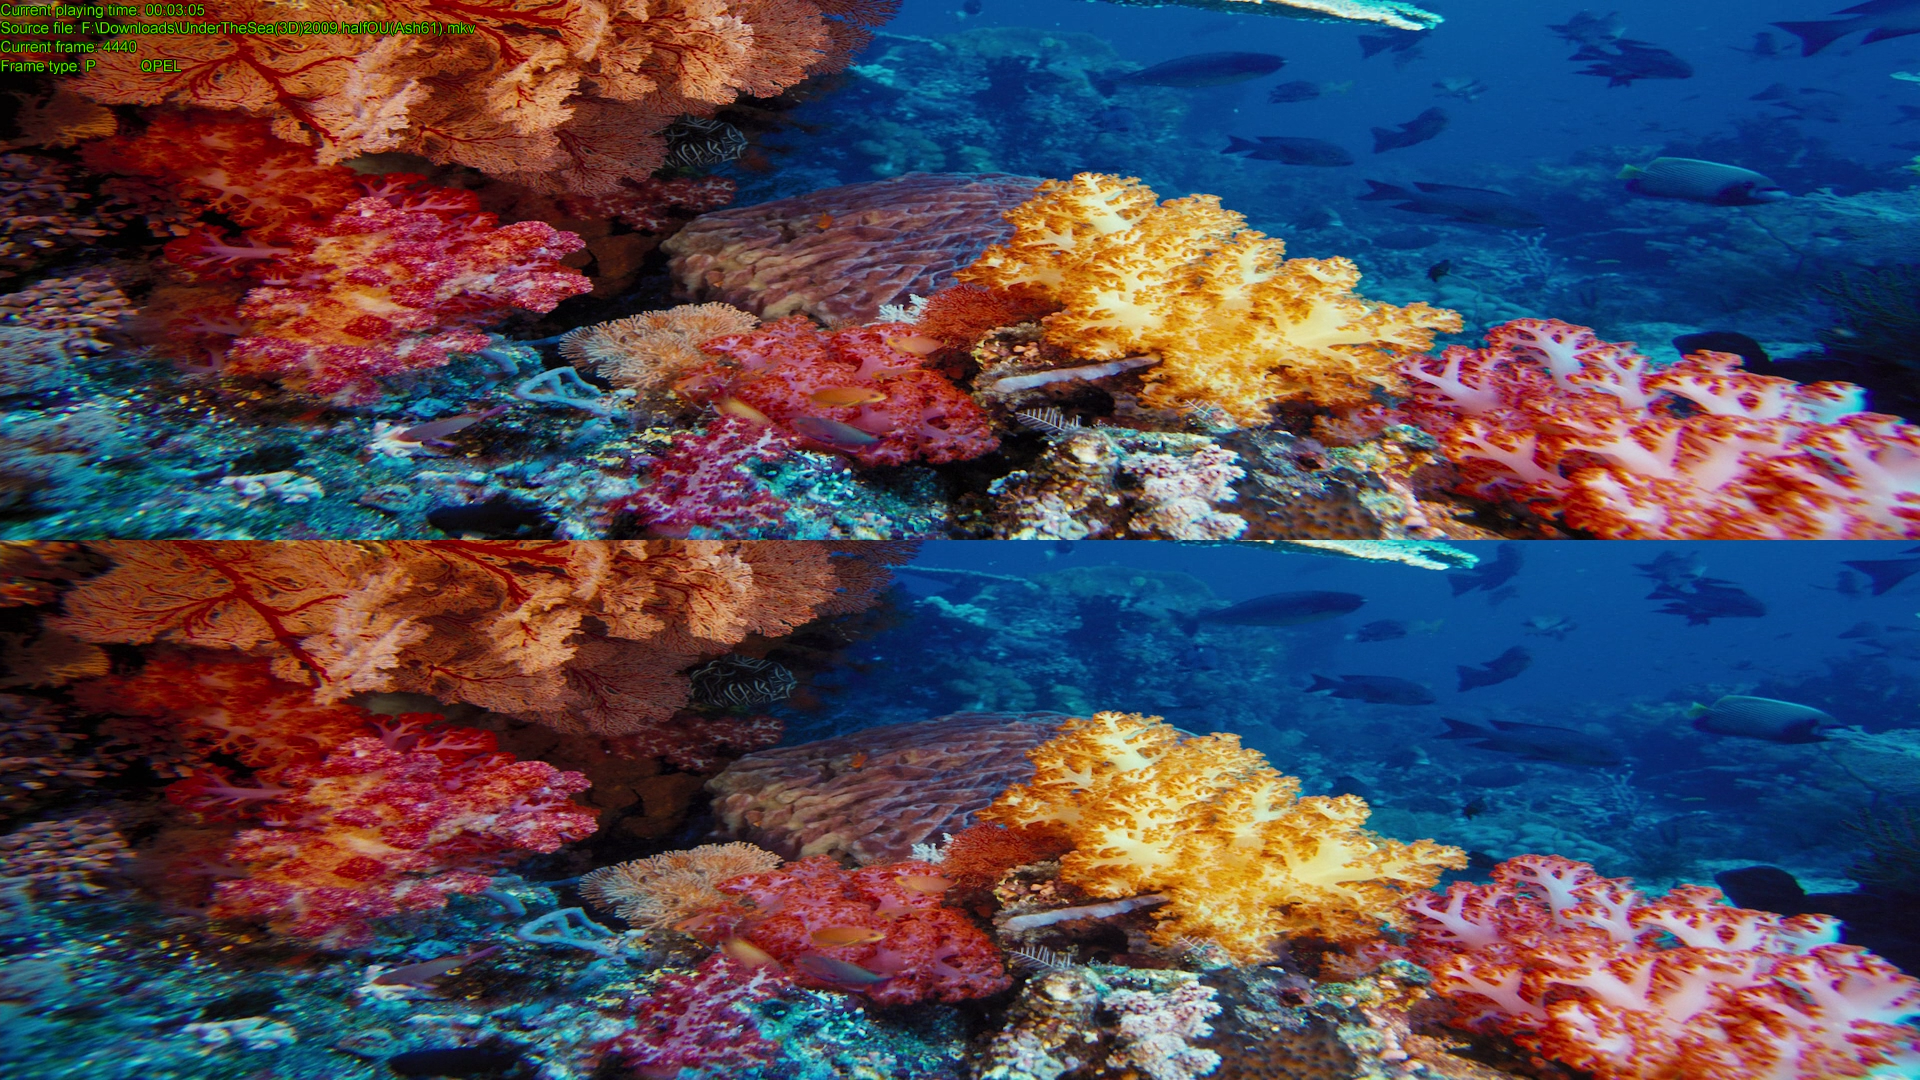 UnderTheSea-BDrip-01.png